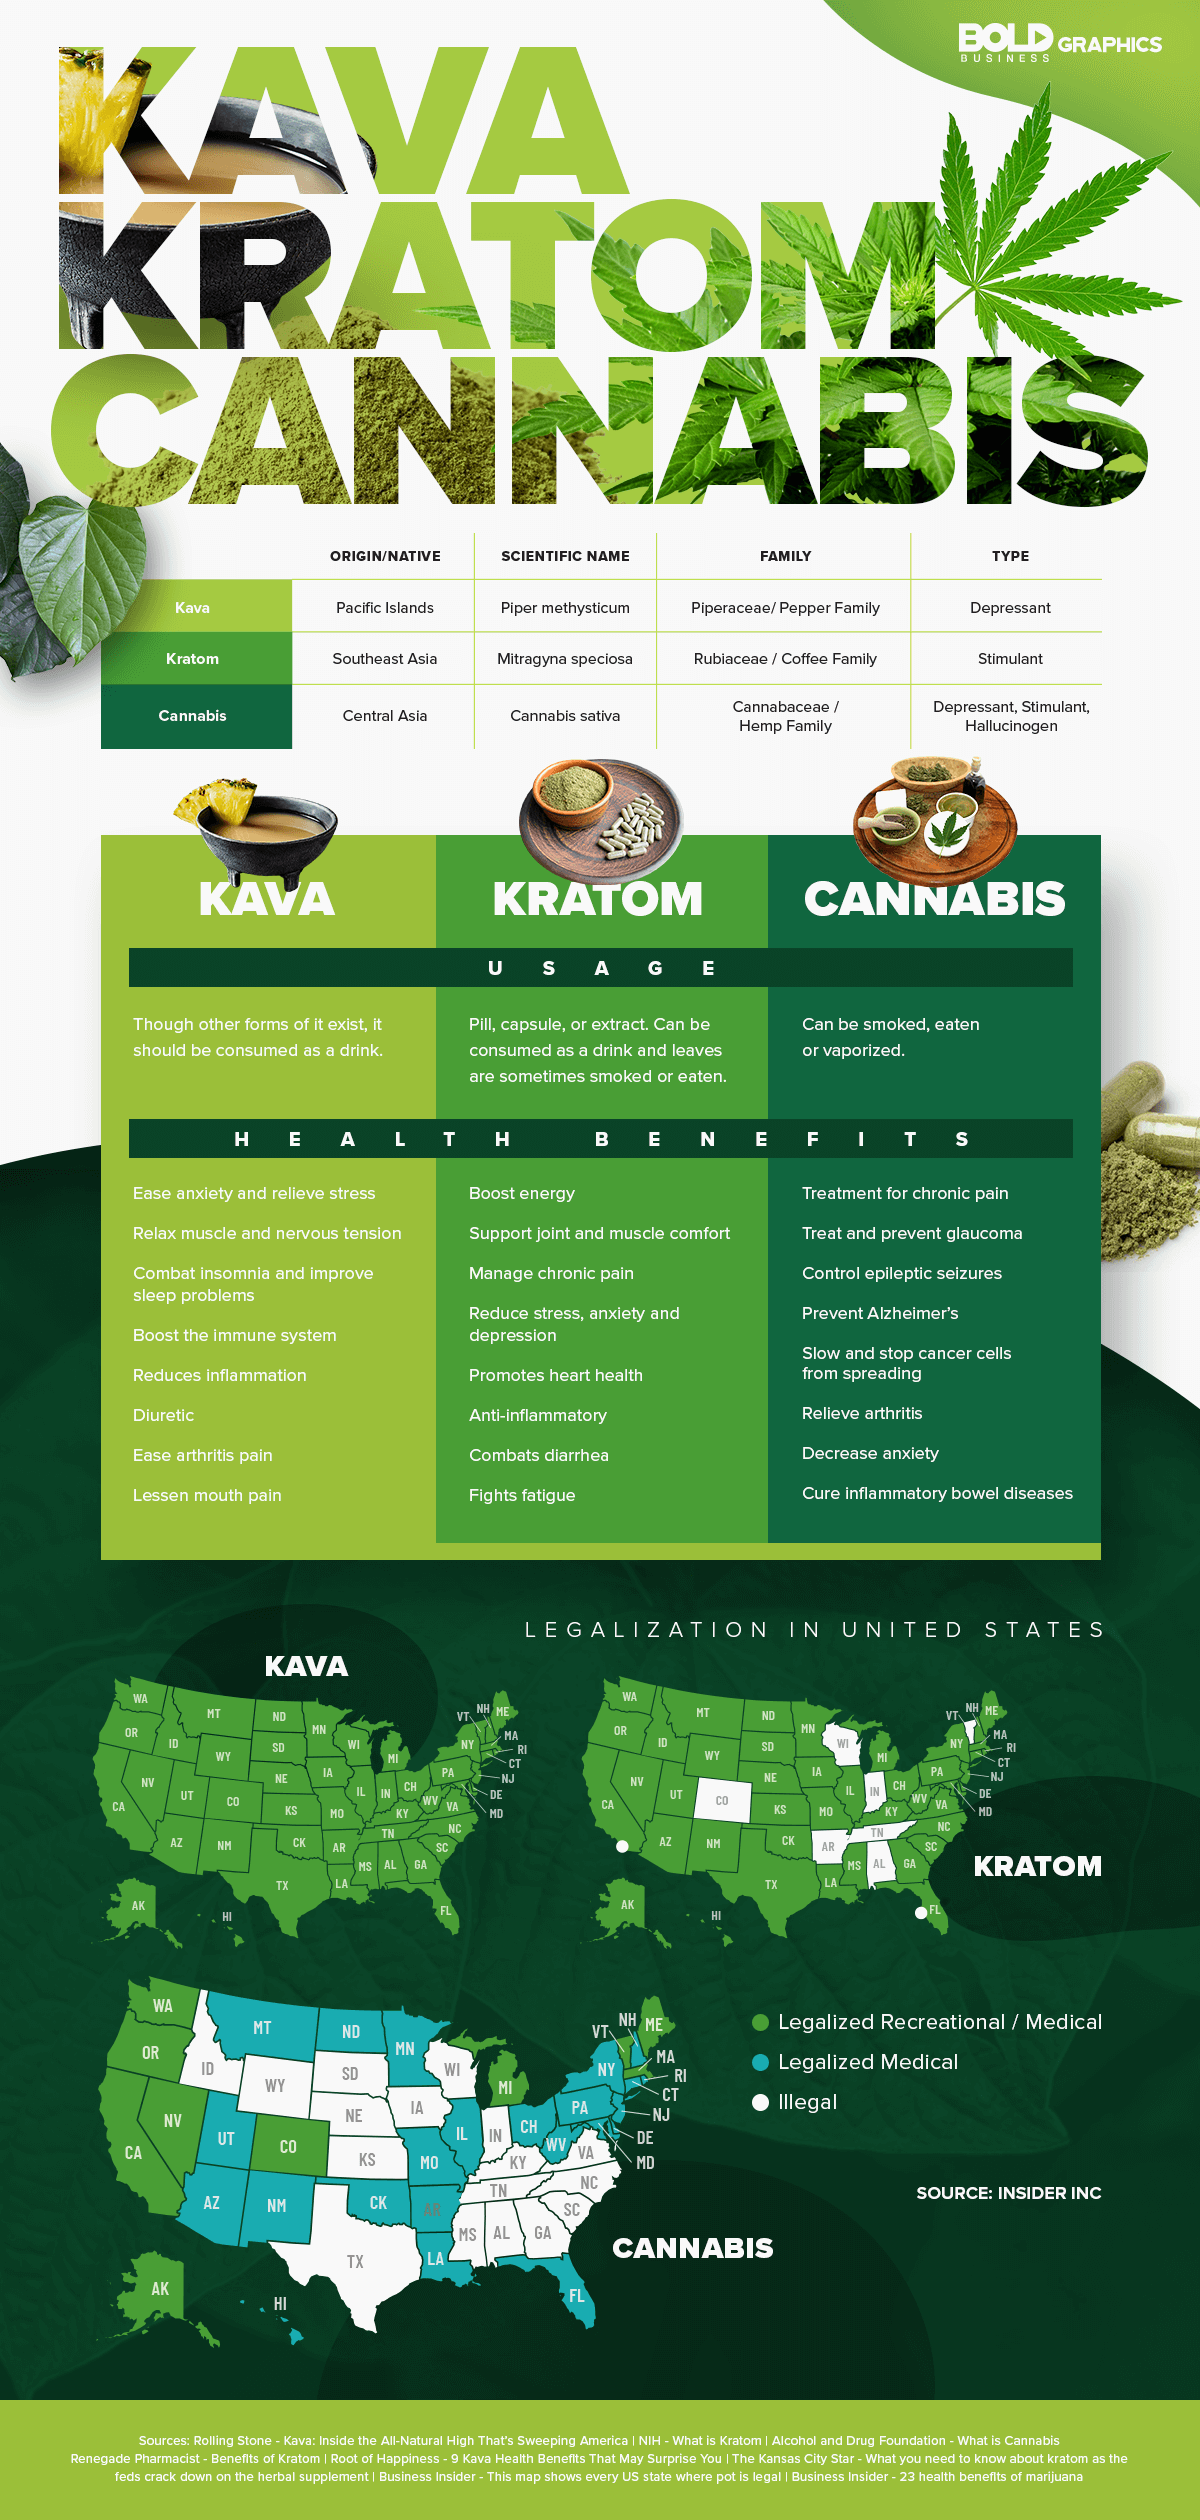 infographic about the kava, kratom, and cannabis legalization along with their uses and benefits.